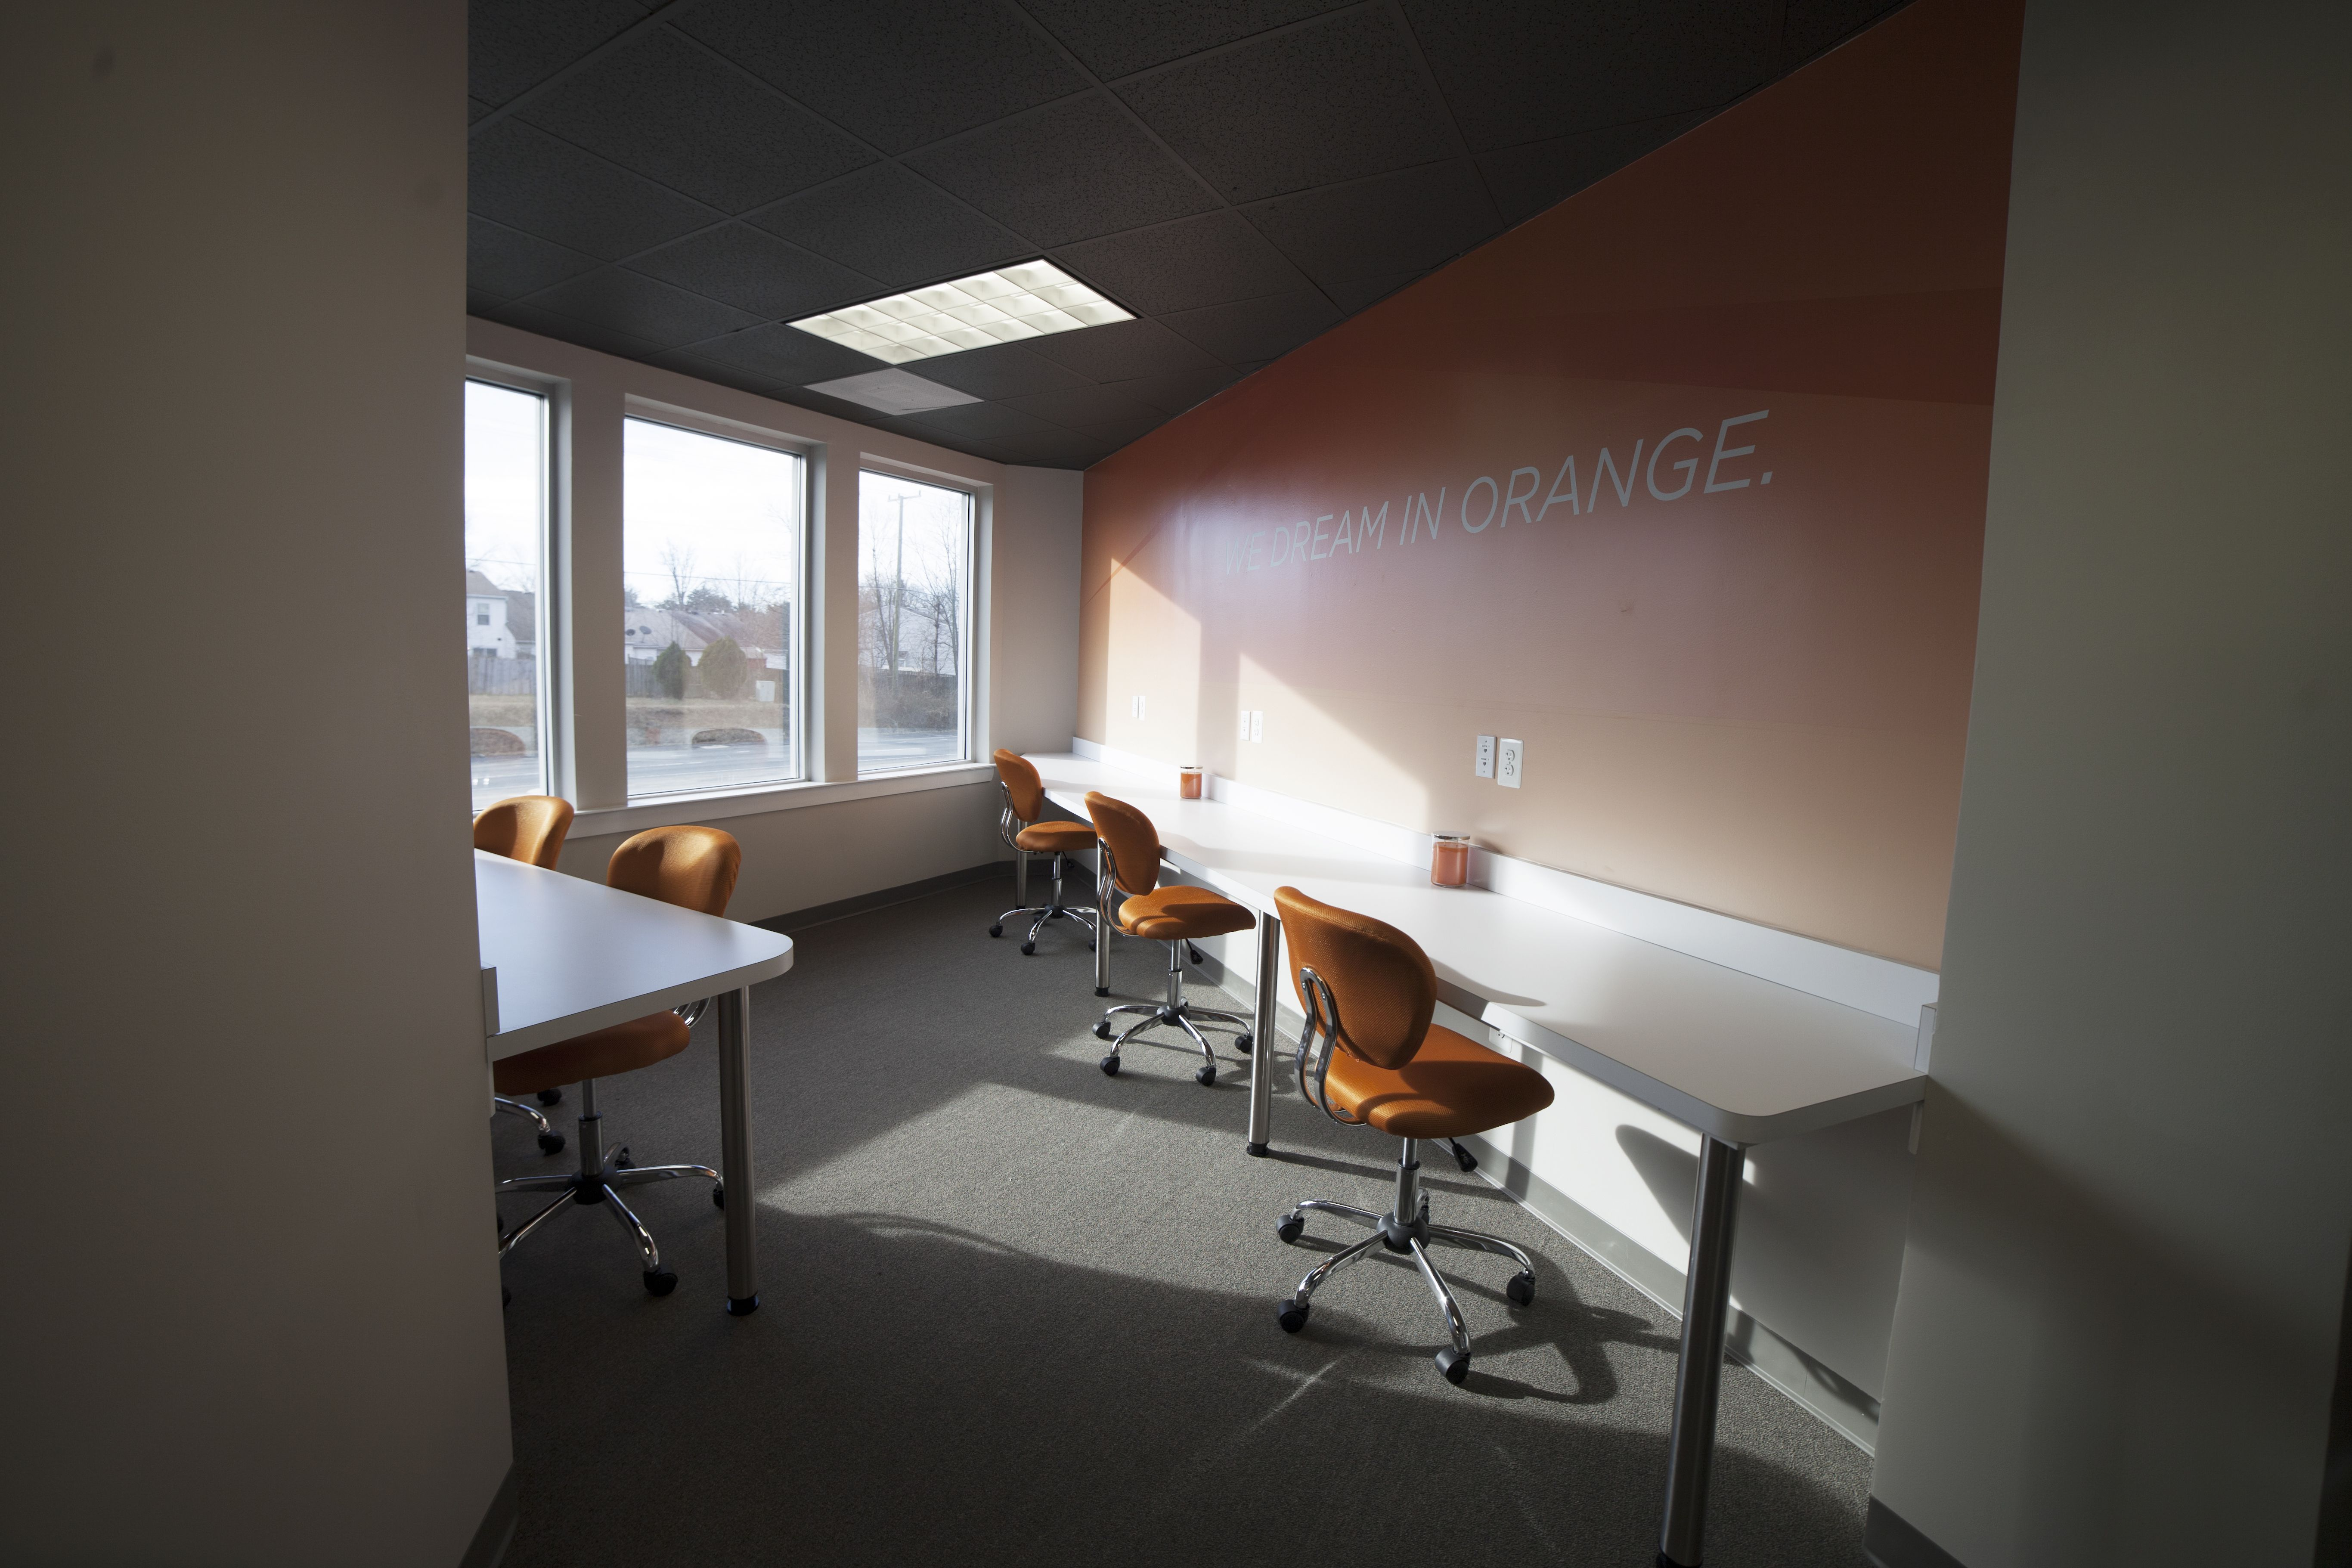 Macdoc realty office decorated by five forty creative commercial